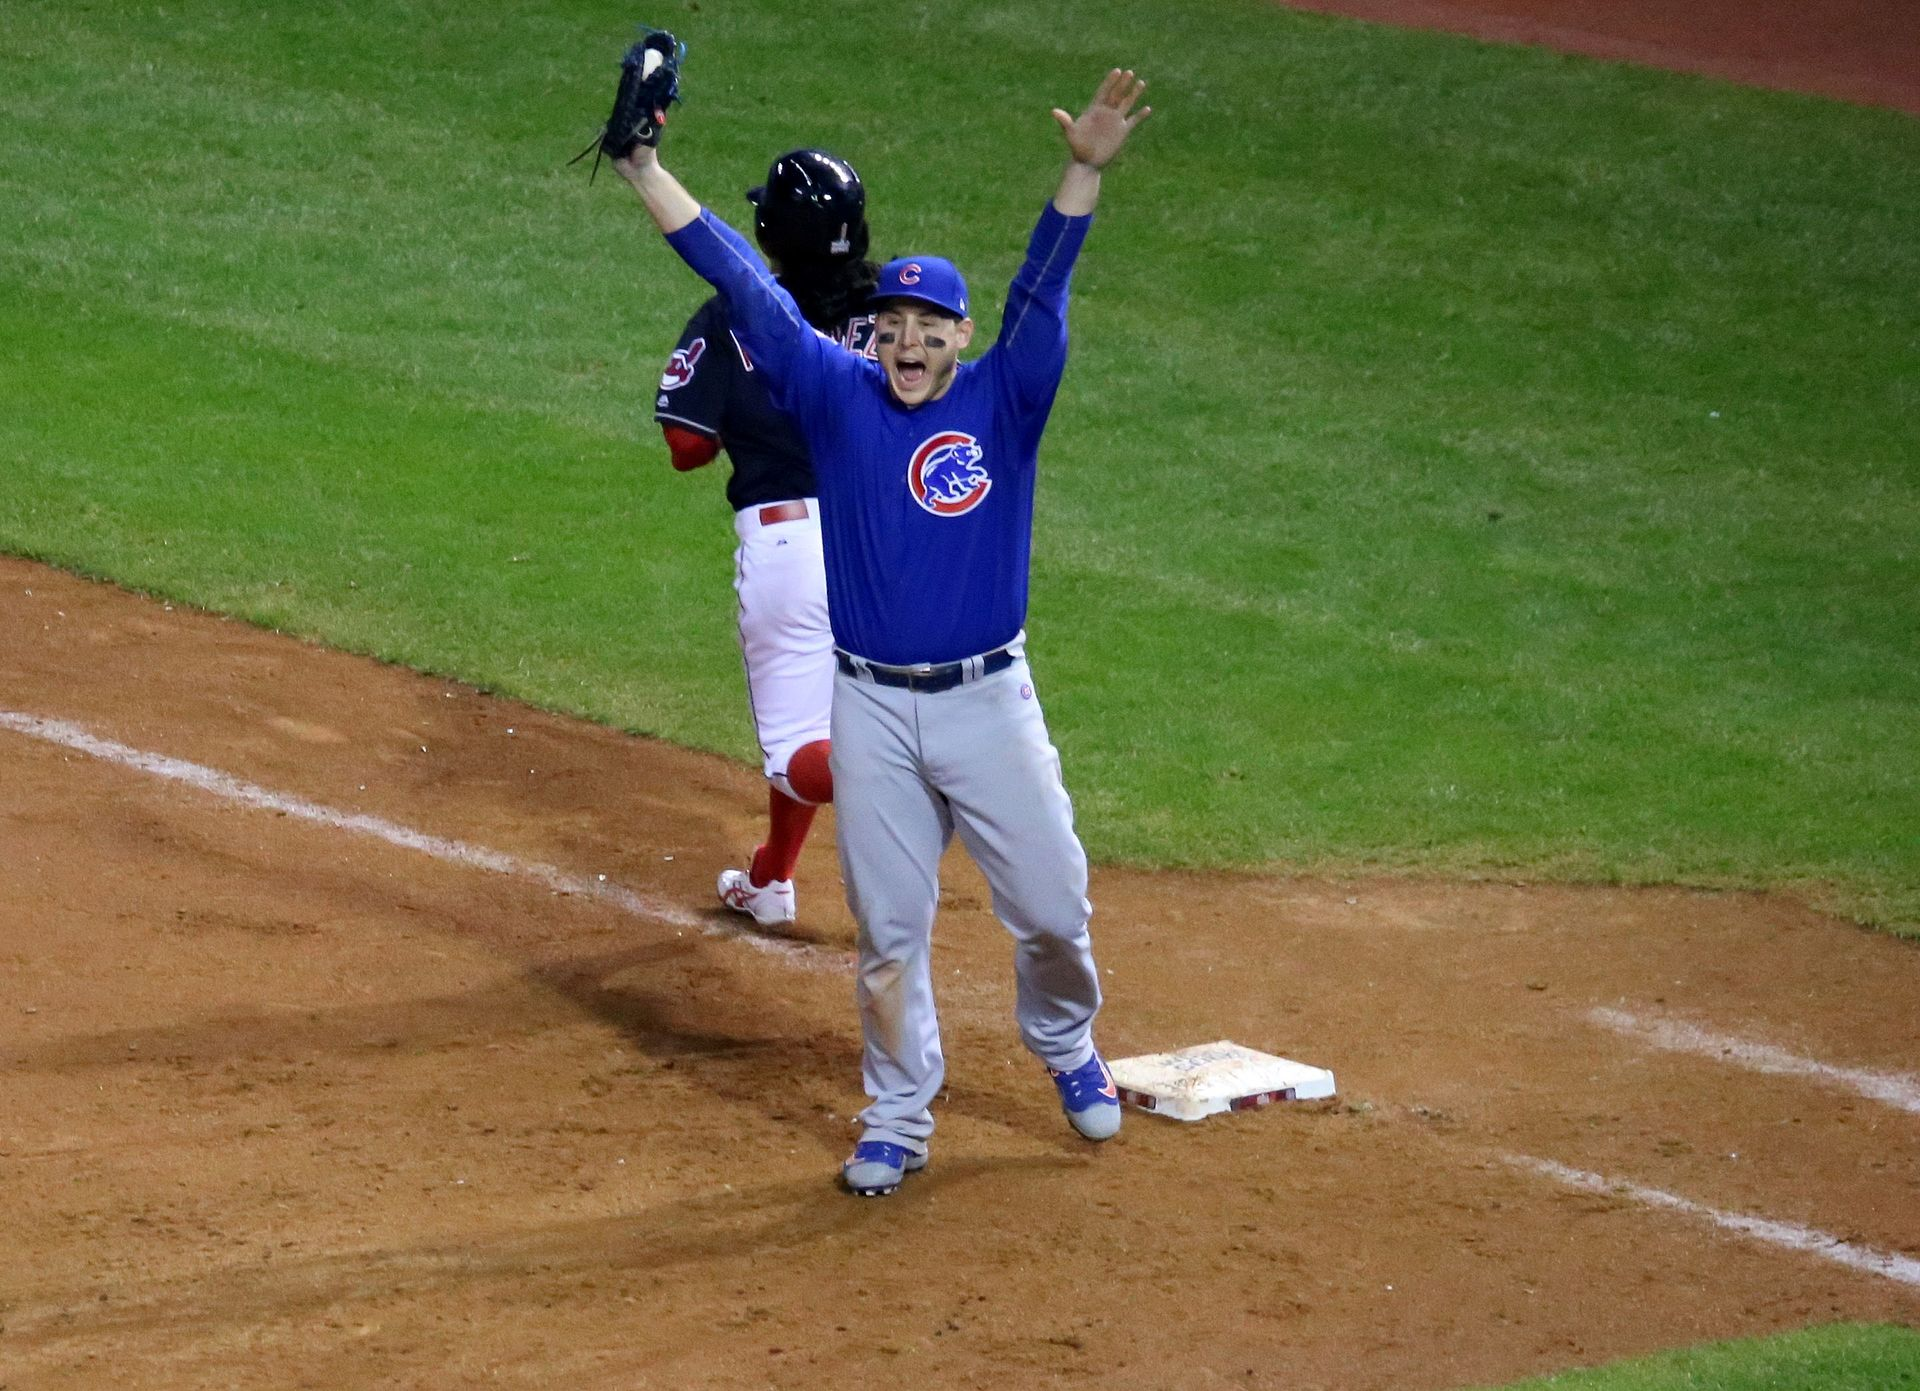 Anthony Rizzo after catching the final out of the World Series